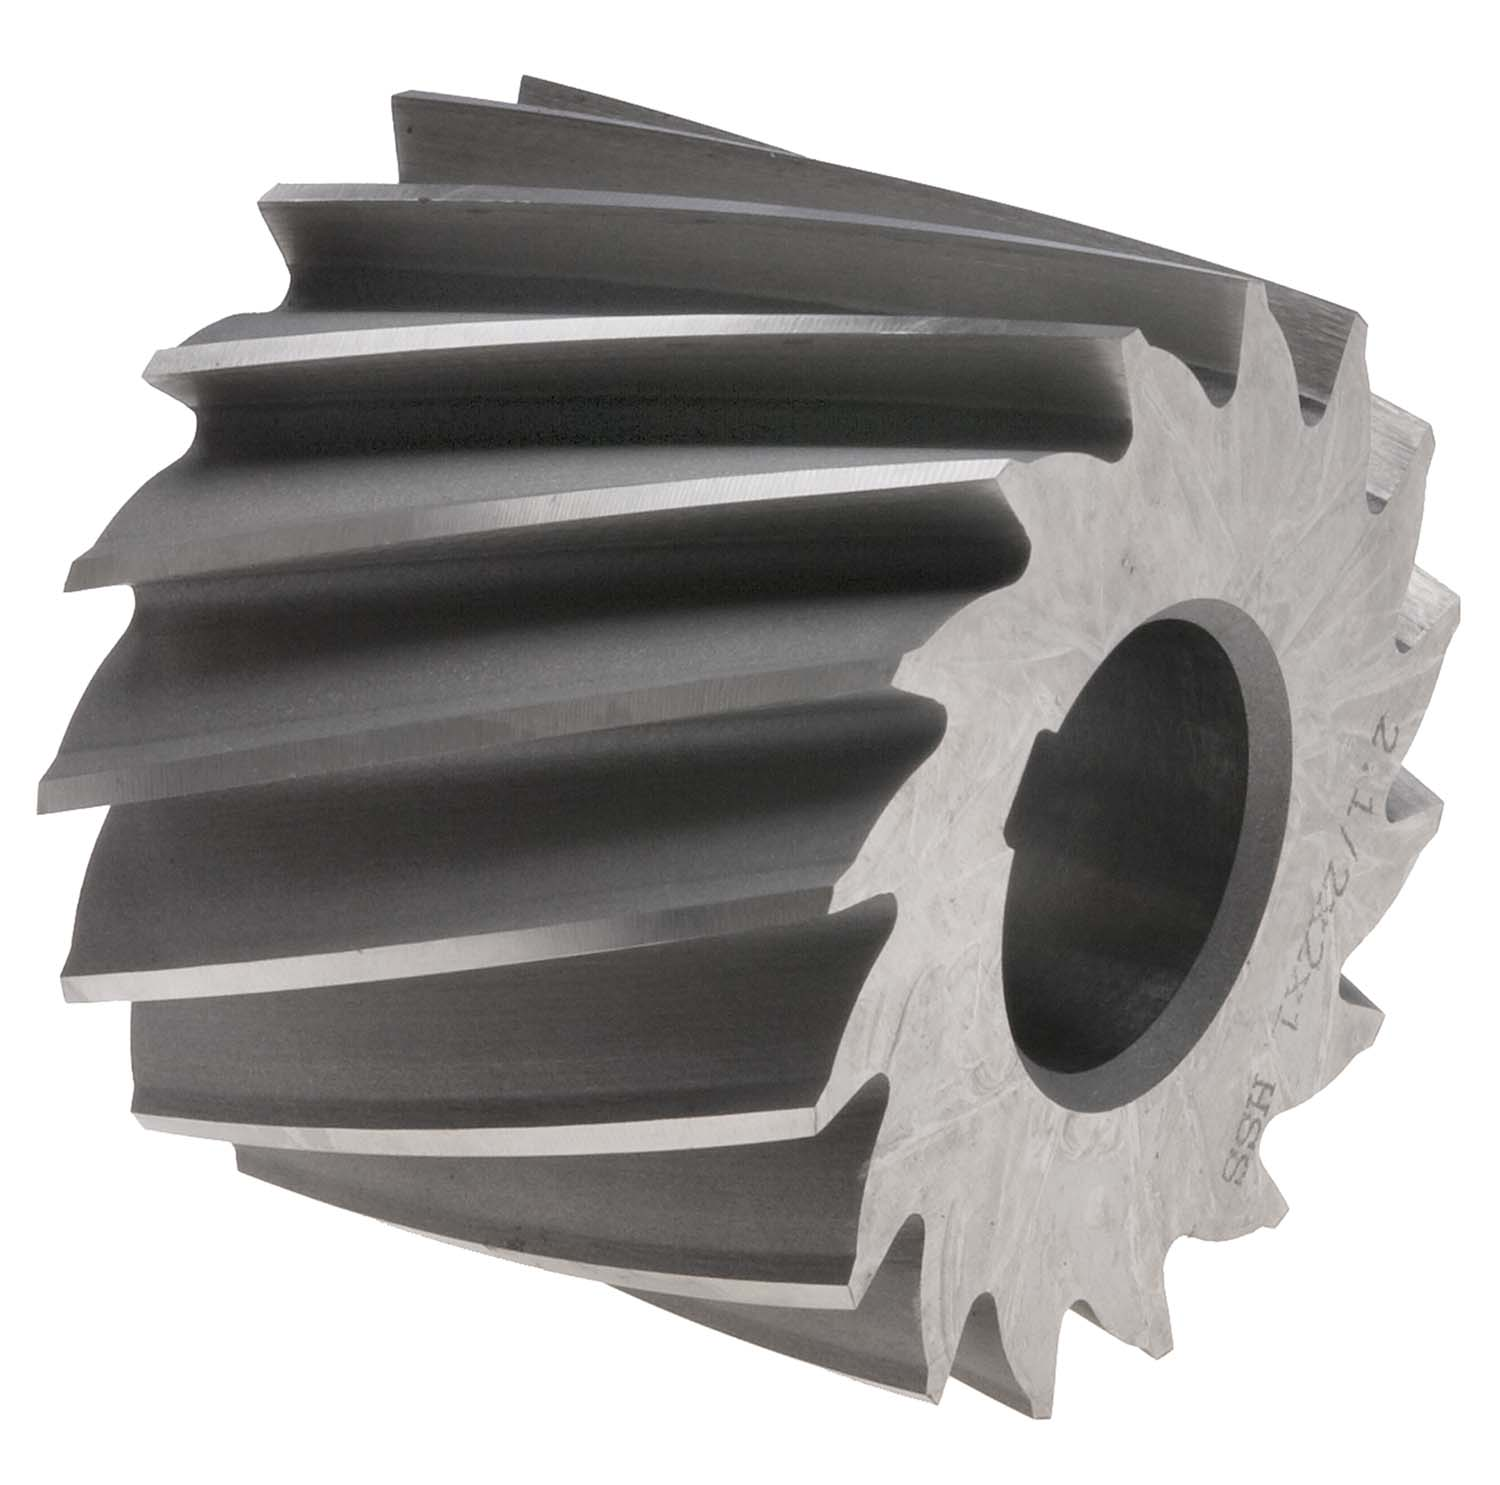 4 X 1/2 X 1-1/4 Plain Milling Cutter, High Speed Steel